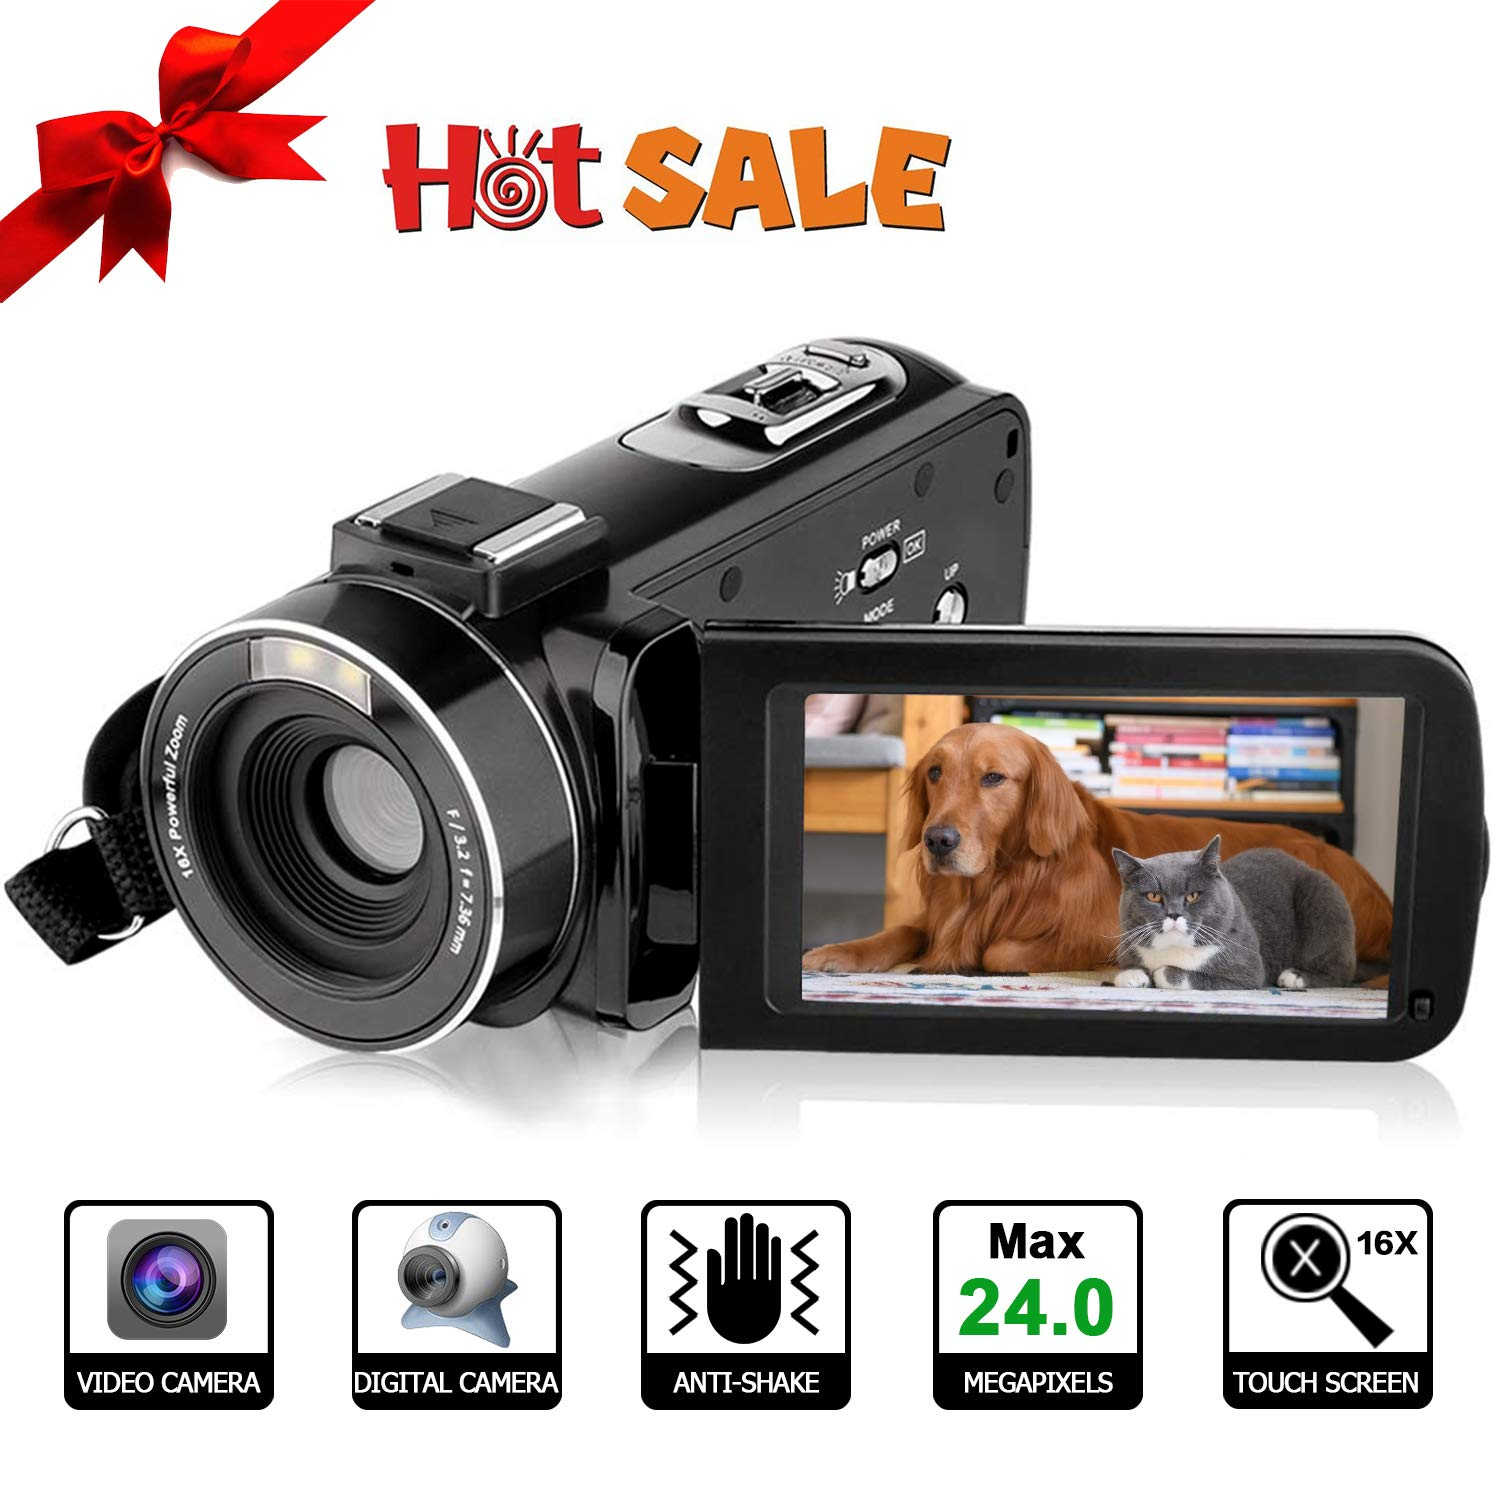 Video Camera HD Video Camcorder - Upgraded Version 1080P Camcorder Full HD Digital Video Camera, 3.0 Inch LCD 270 Degree Rotatable Screen 16X Digital Zoom YouTube Video Camera (Black)